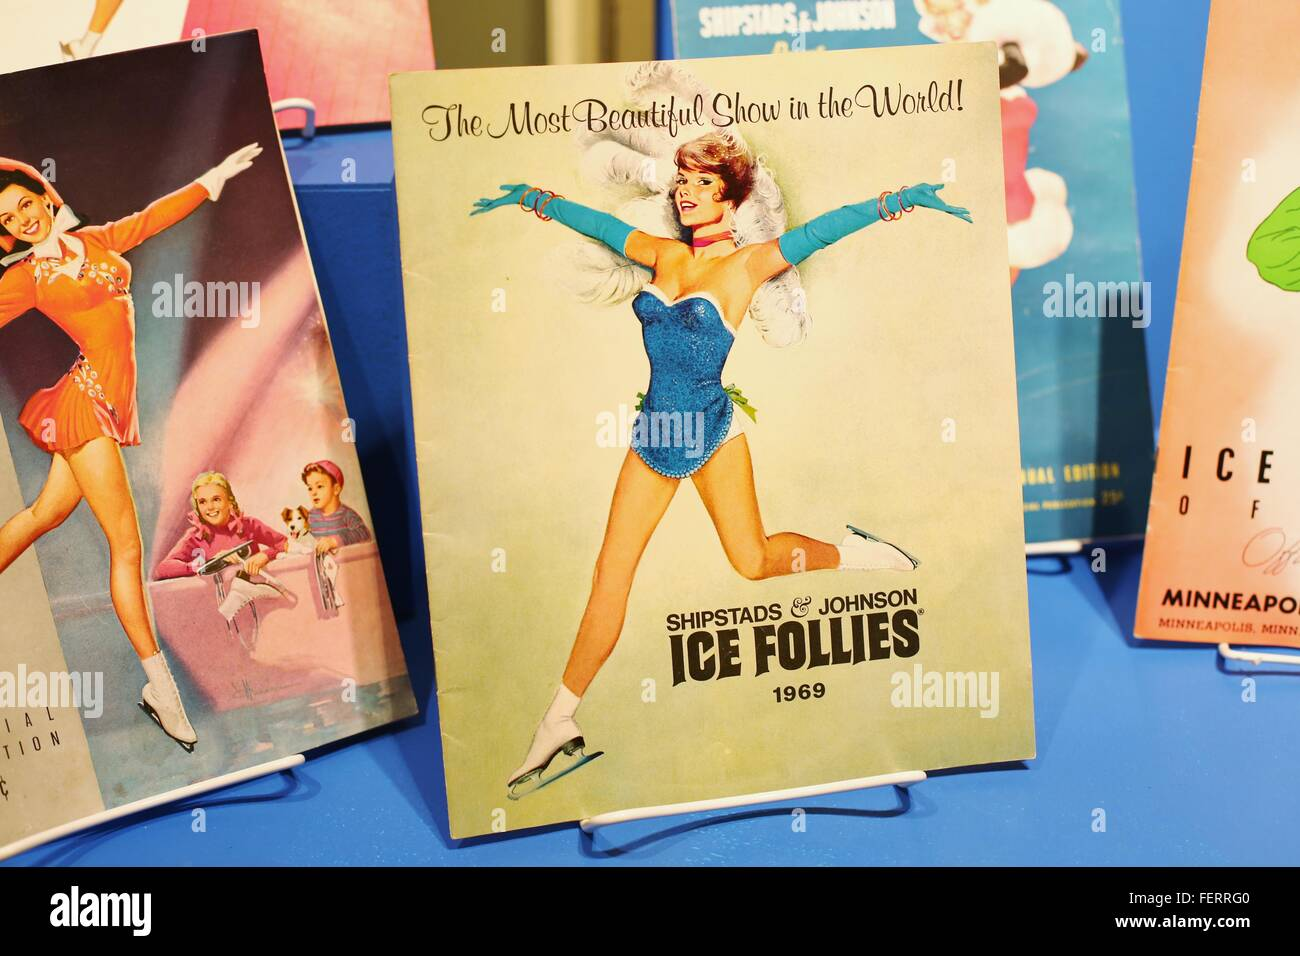 Vintage programs from Shipstads and Johnson ice follies, on display at the Hennepin History Museum in Minneapolis, - Stock Image